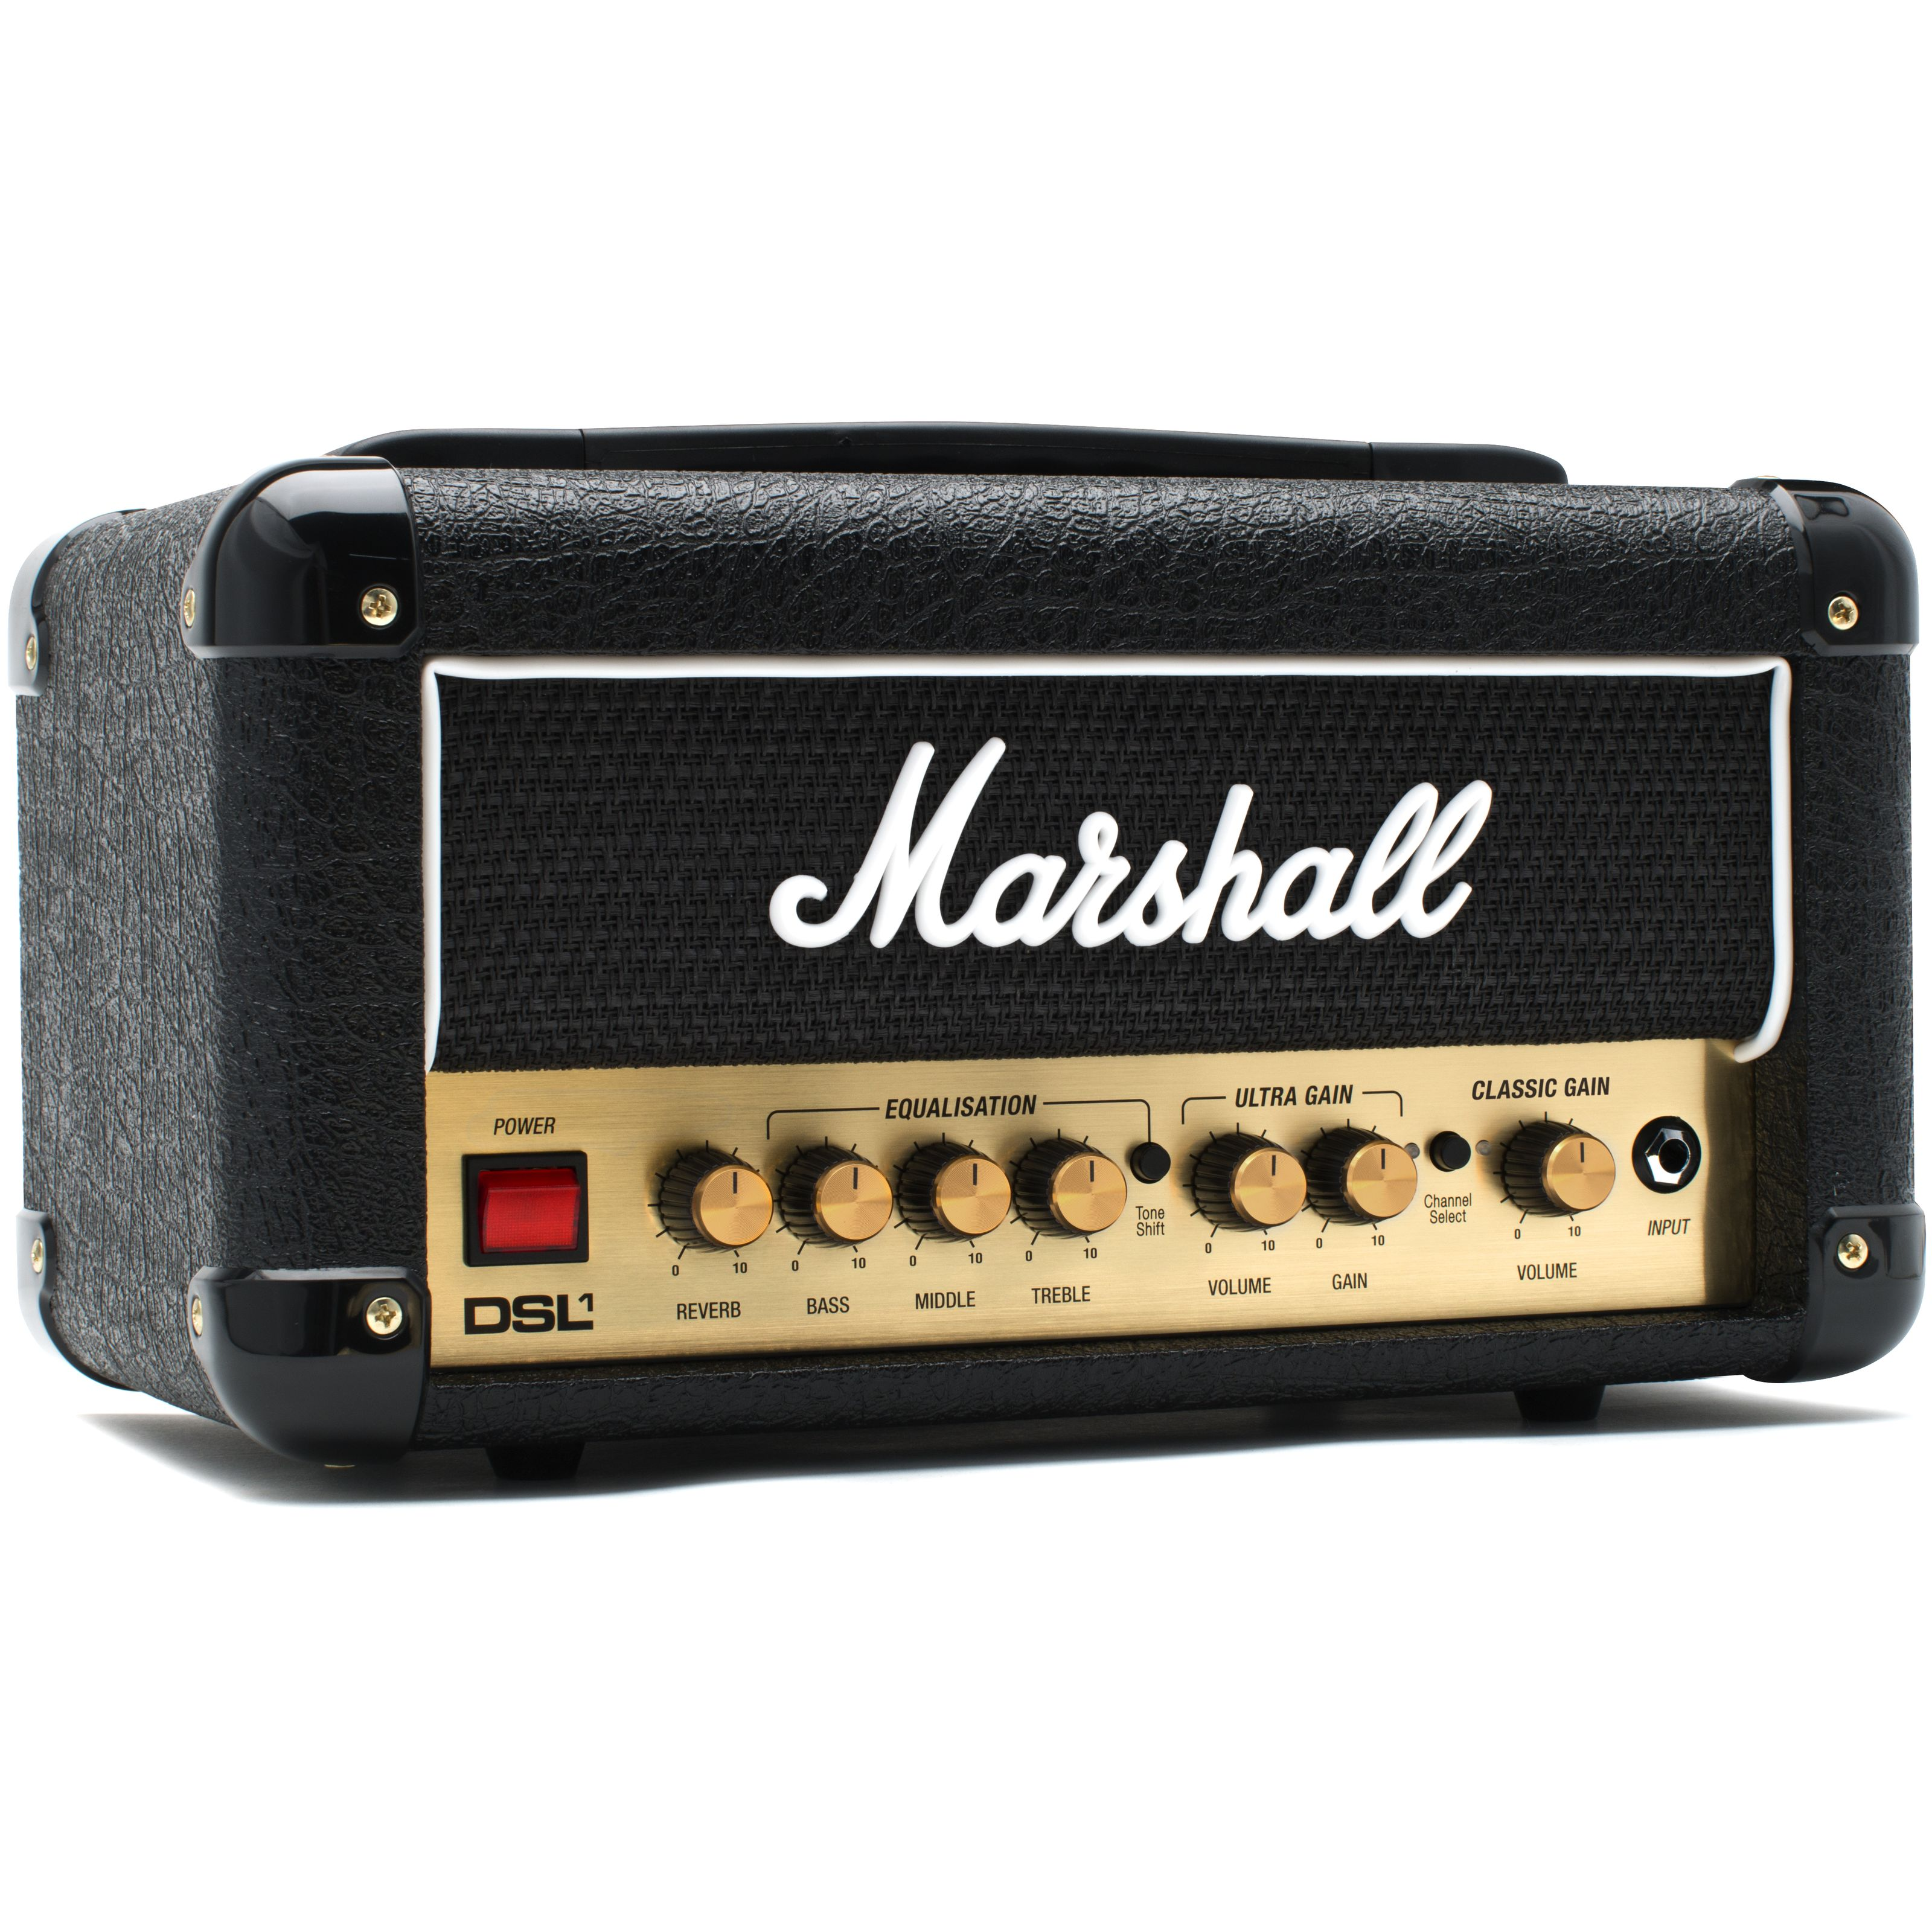 Marshall - DSL1HR